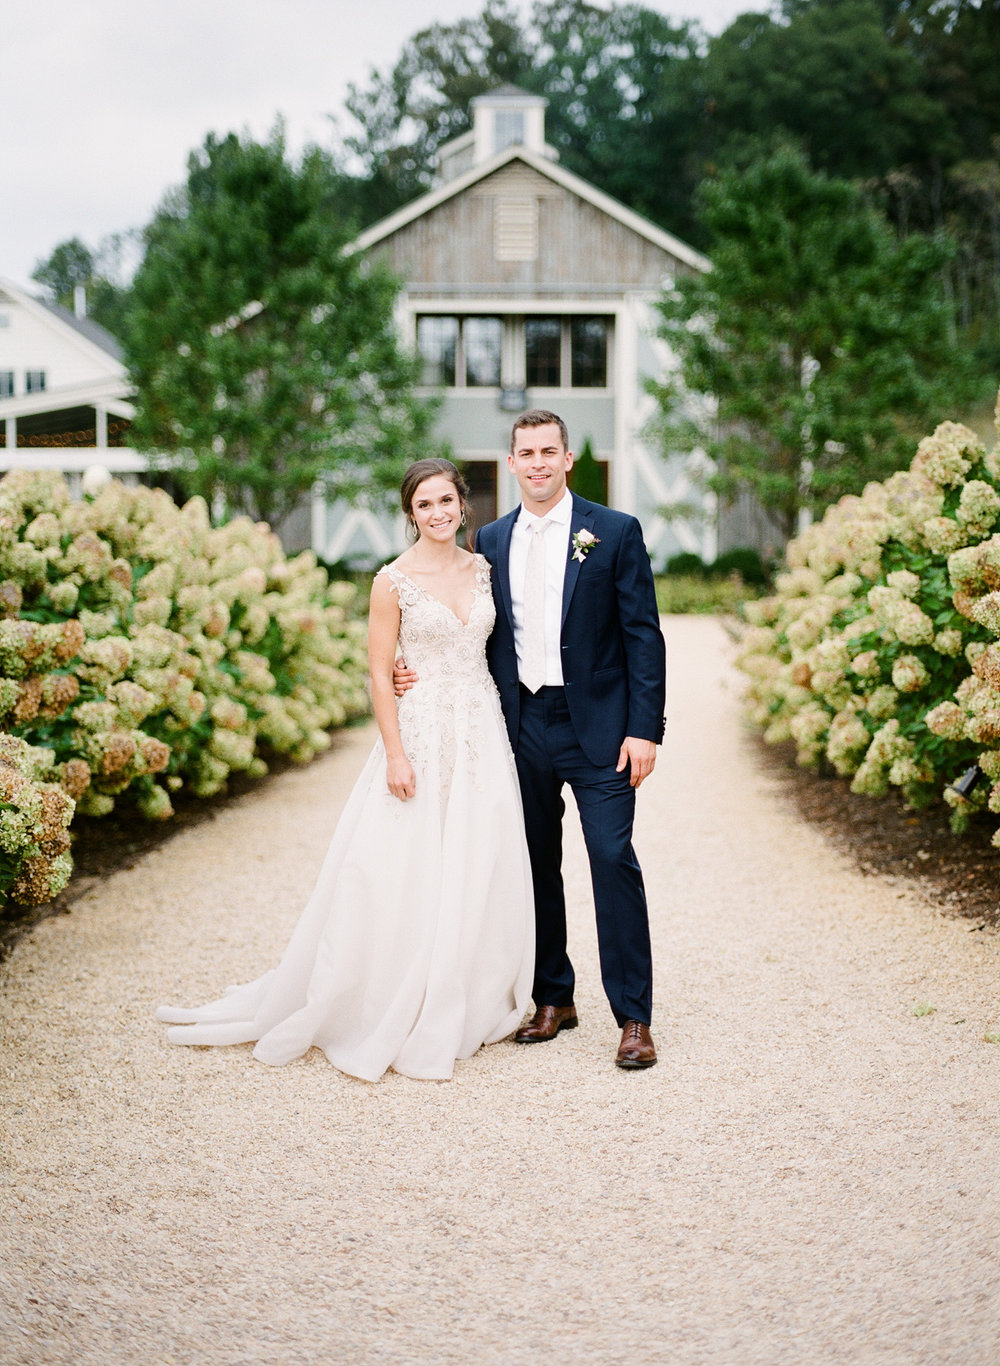 Pippin-Hill-Farm-and-Vinyards-Wedding-Film-Photography-16.jpg